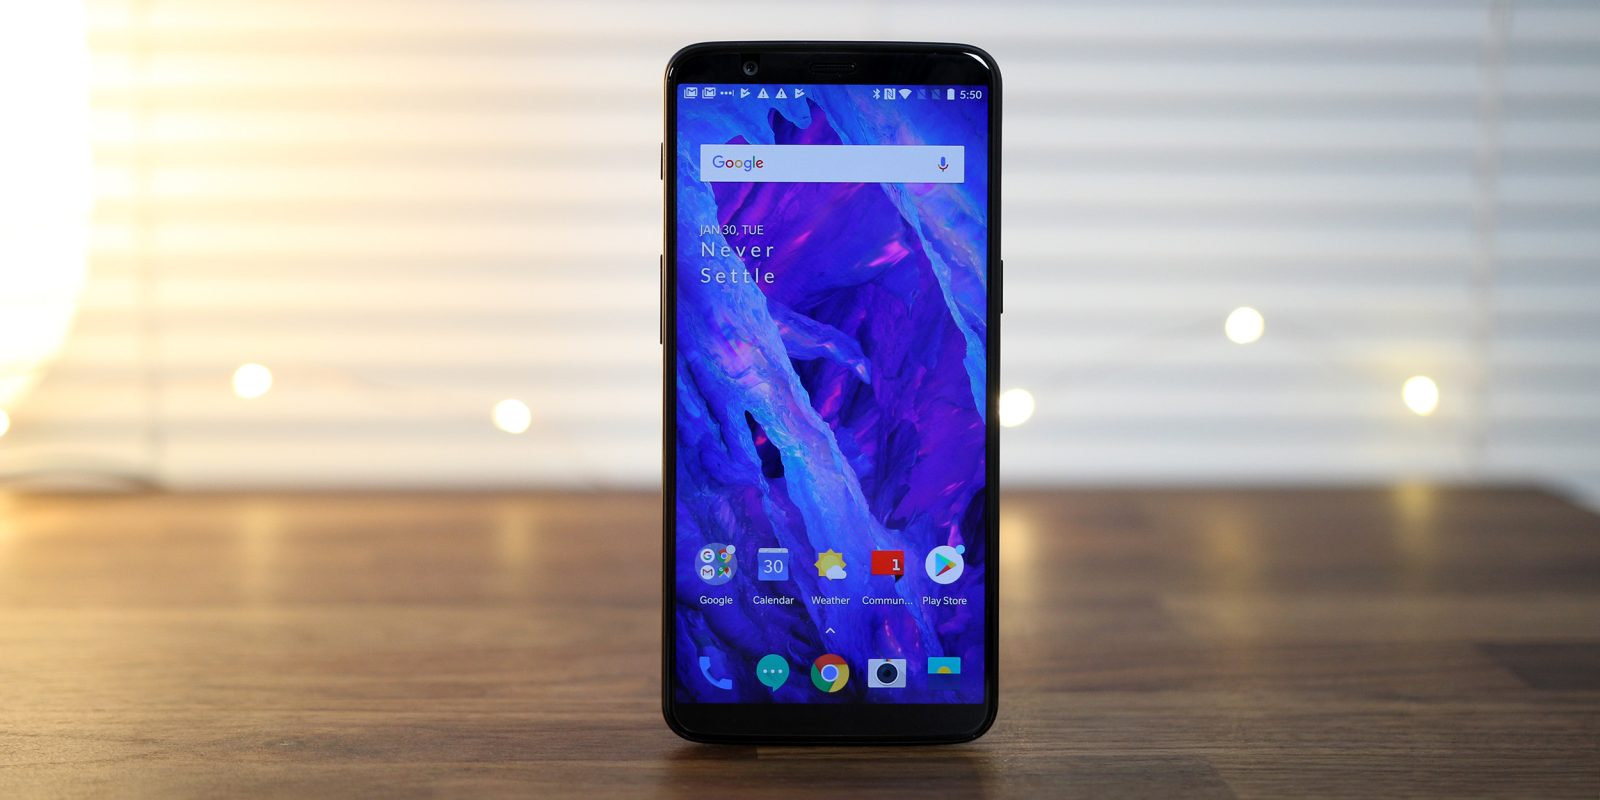 OxygenOS 9.0.9 OTA rolling out now for the OnePlus 5/5T w/ October 2019 patch